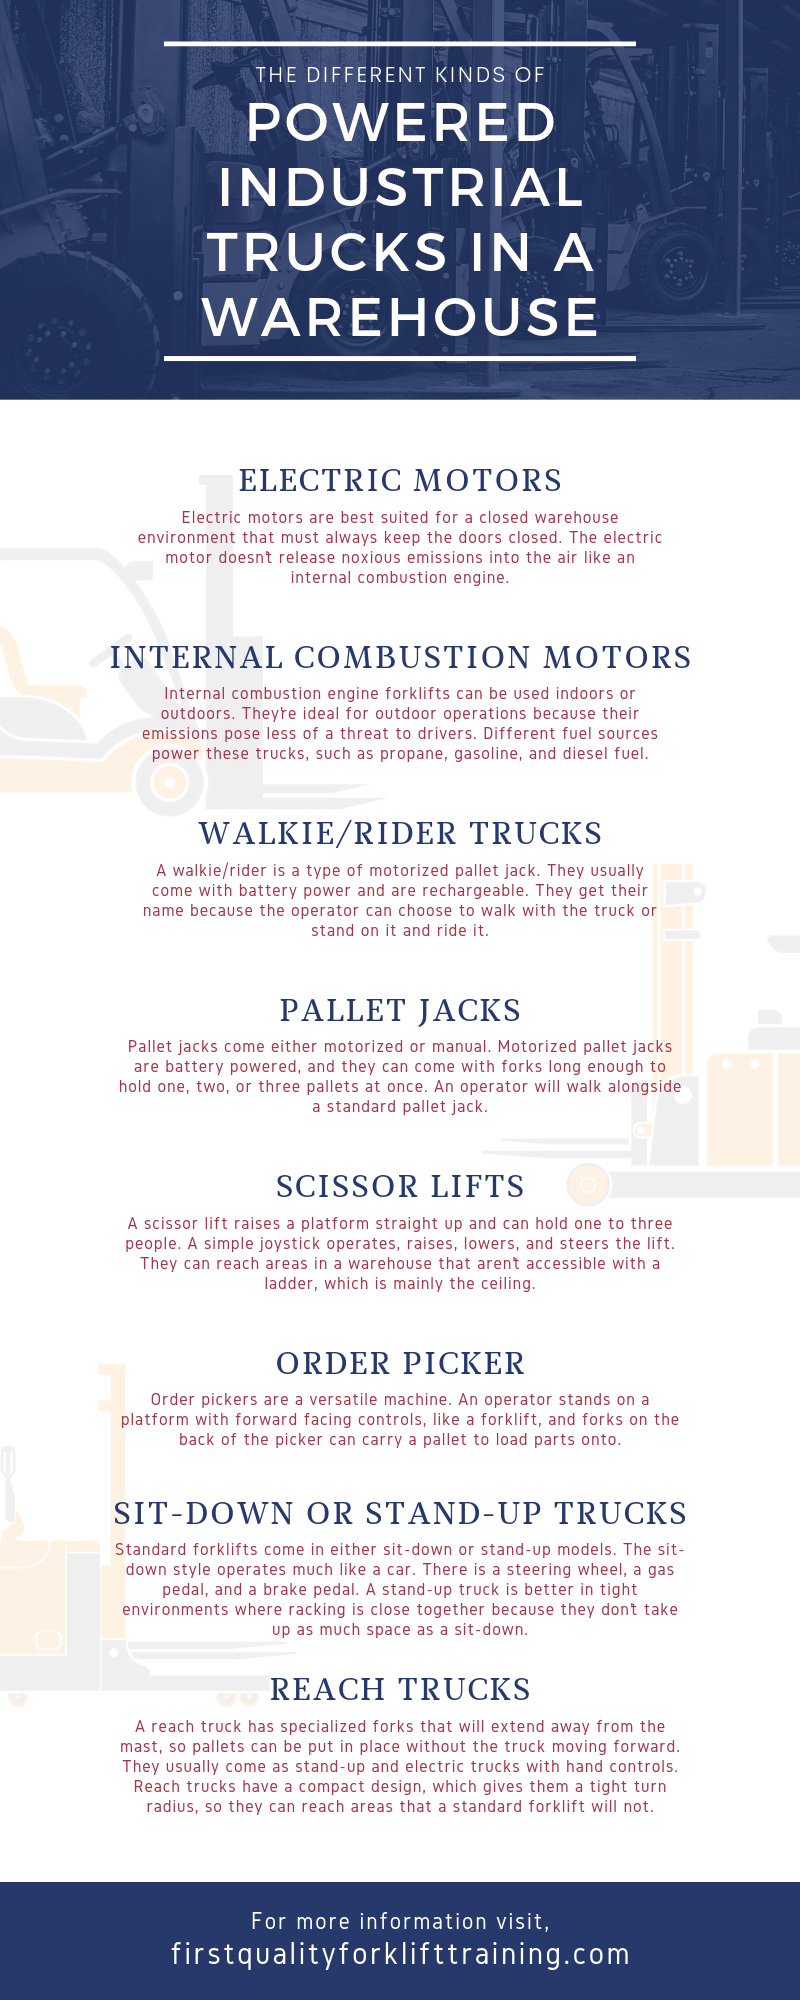 The Different Kinds of Powered Industrial Trucks in a Warehouse infographic